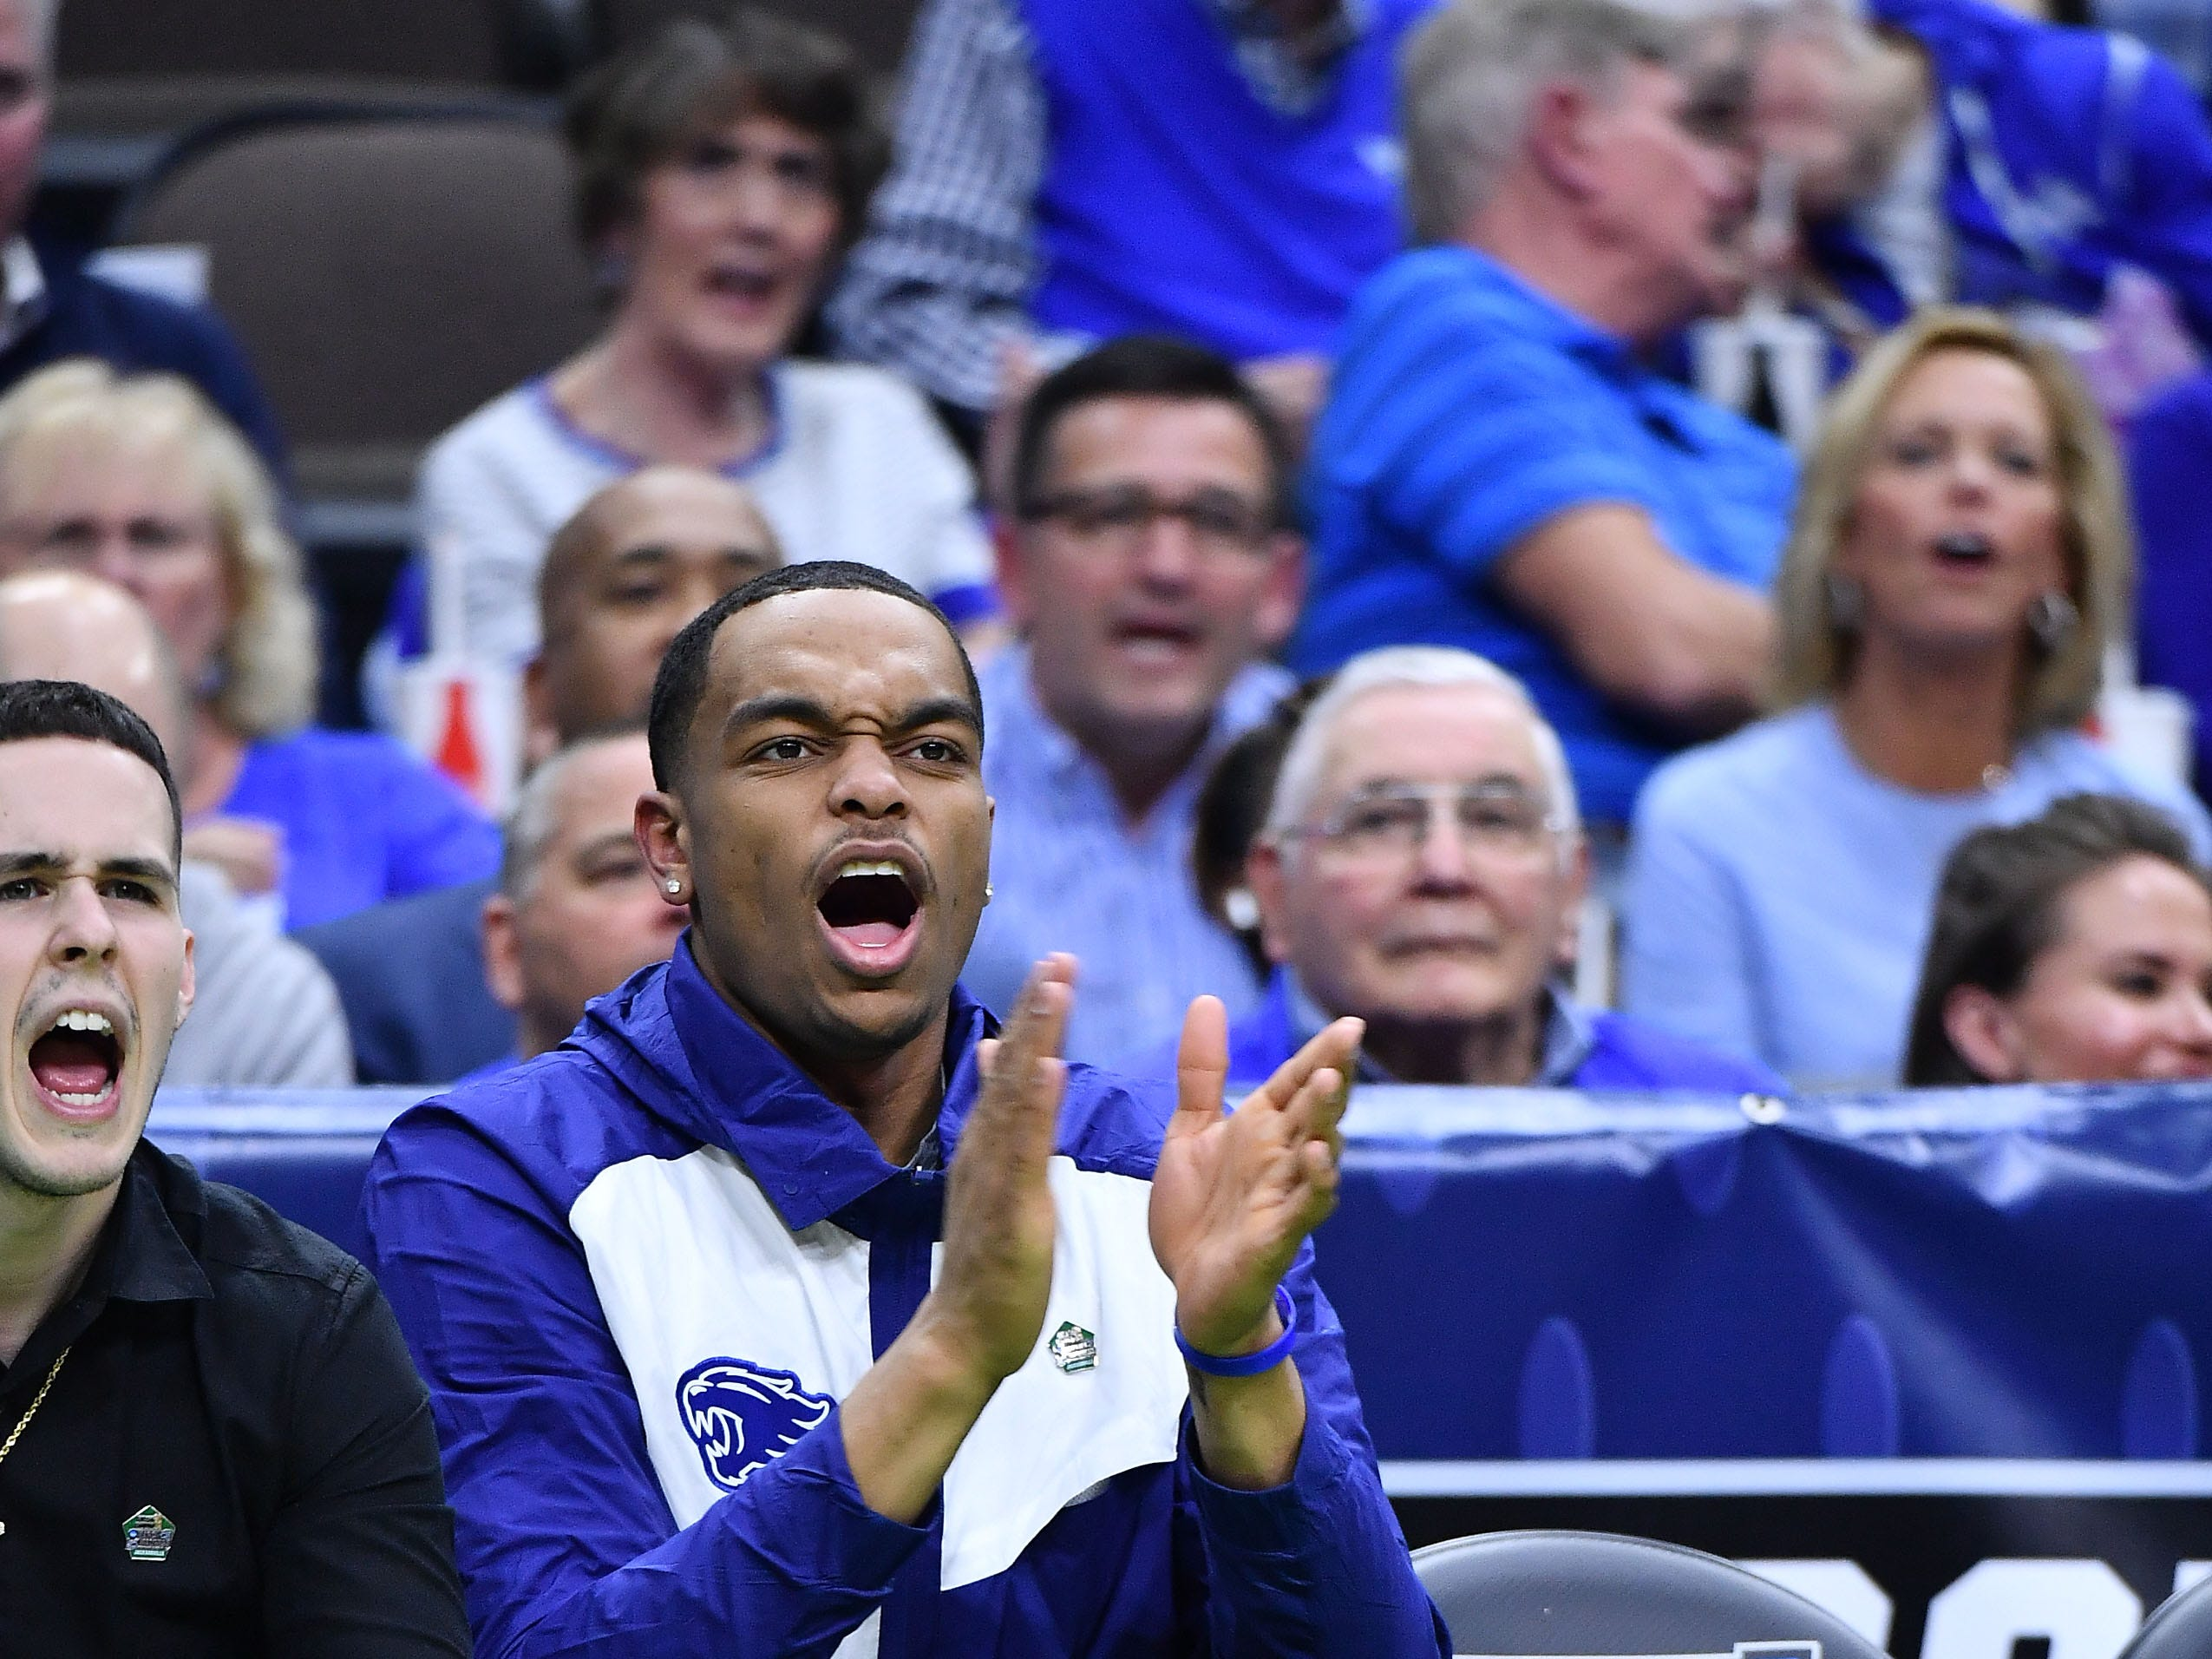 Mar 21, 2019; Jacksonville, FL, USA; Kentucky Wildcats forward PJ Washington (25) reacts on the bench during the second half in the first round of the 2019 NCAA Tournament against the Abilene Christian Wildcats at Jacksonville Veterans Memorial Arena. Mandatory Credit: John David Mercer-USA TODAY Sports